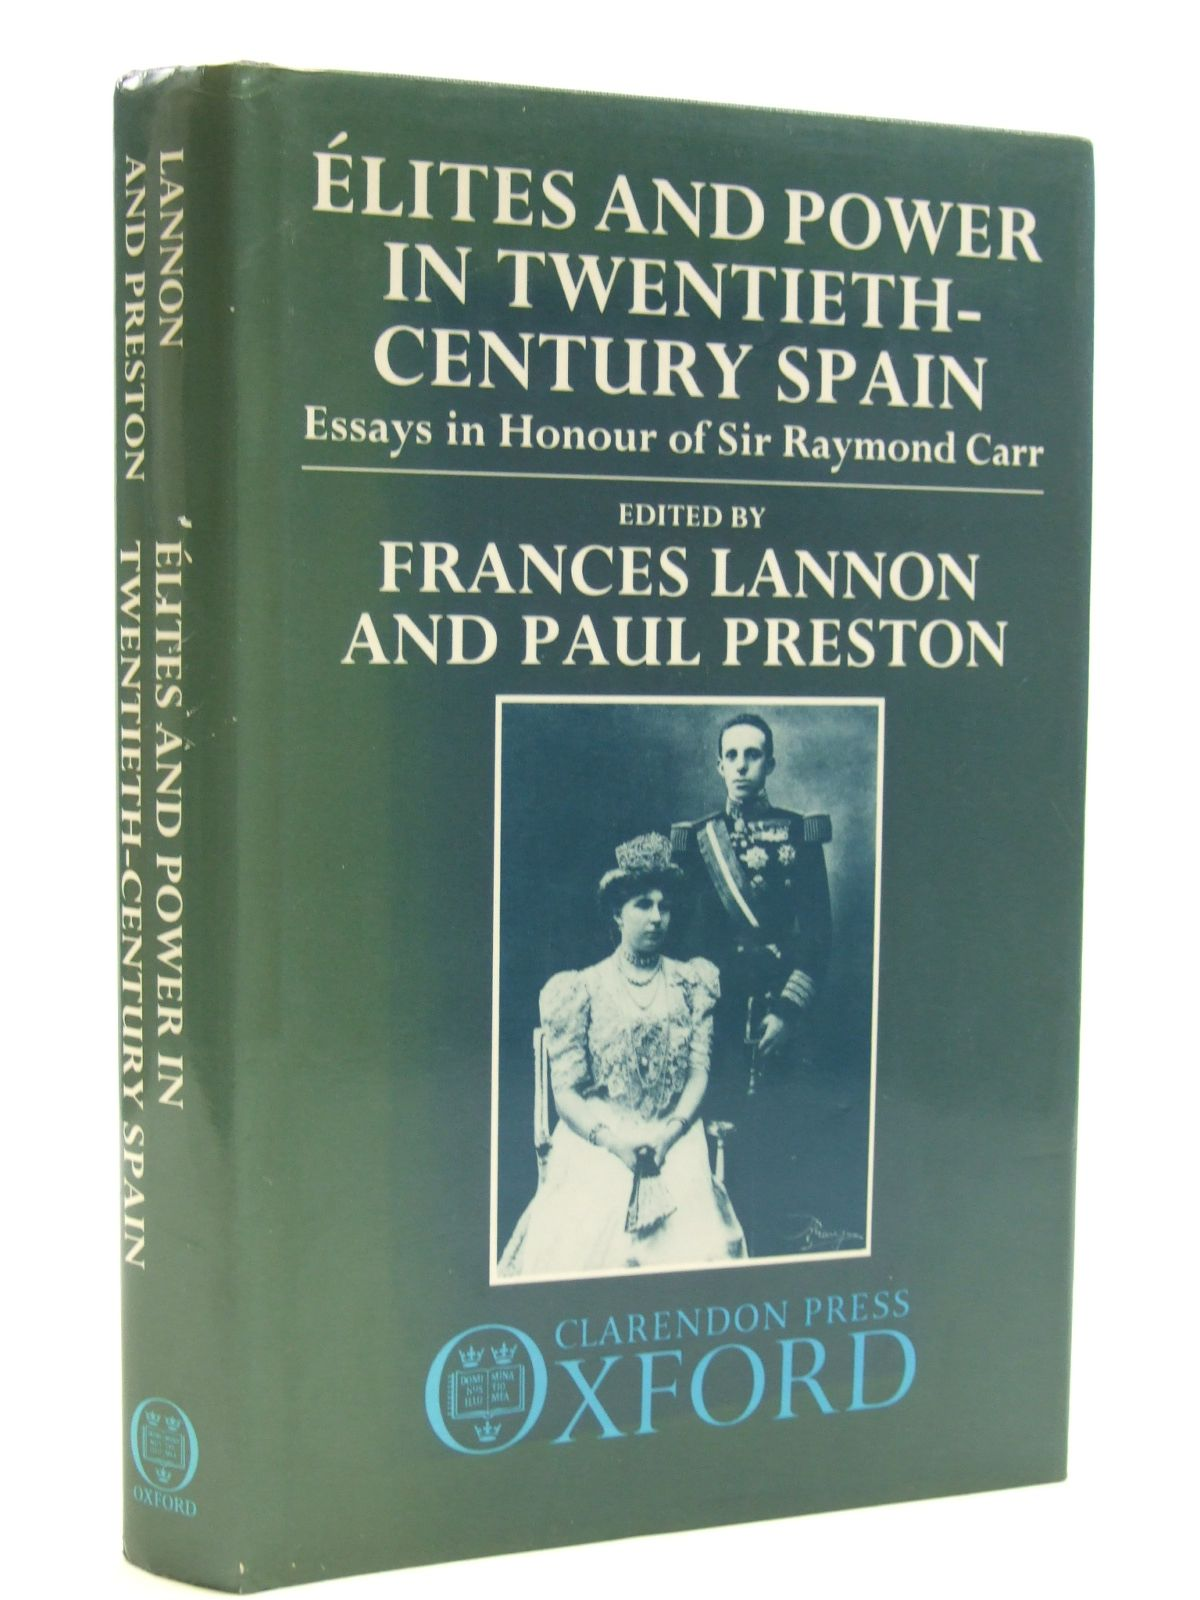 Photo of ELITES AND POWER IN TWENTIETH-CENTURY SPAIN written by Lannon, Frances Preston, Paul published by Clarendon Press (STOCK CODE: 1604318)  for sale by Stella & Rose's Books